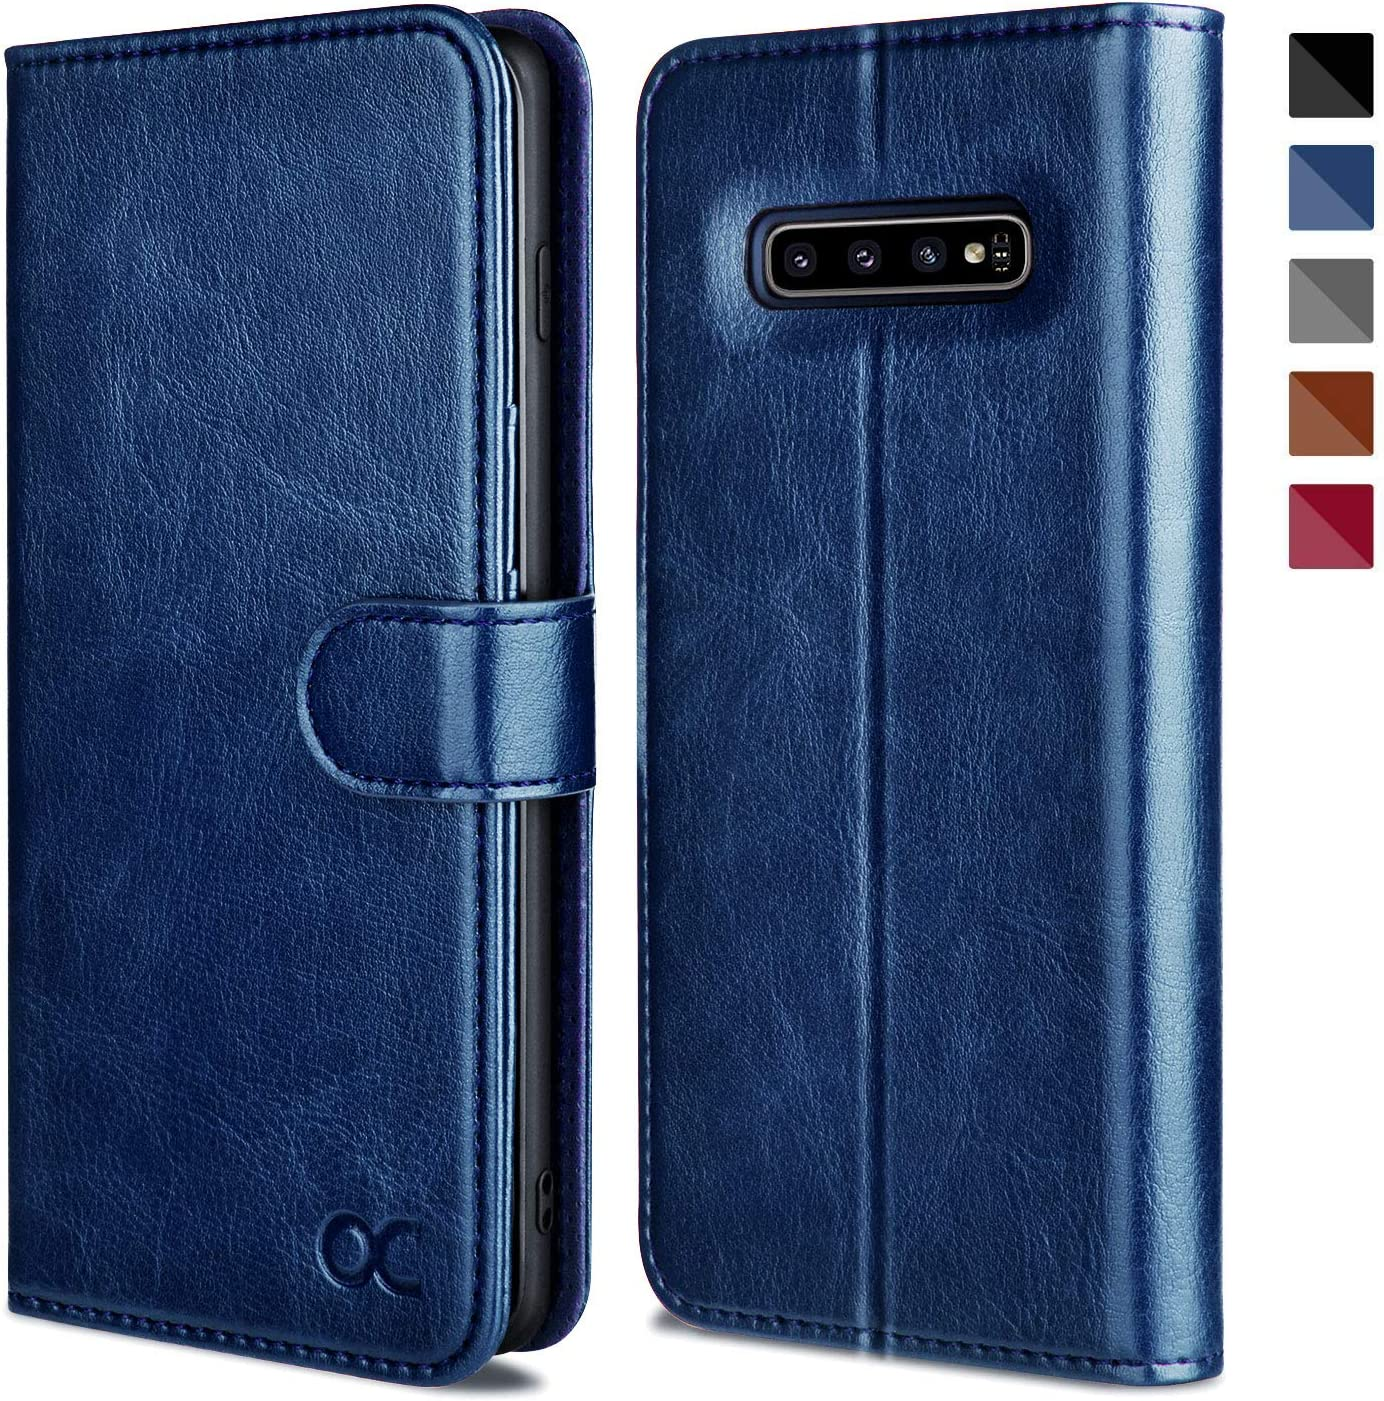 OCASE Samsung Galaxy S10 Plus / S10+ Case [ Card Slot ] [ Kickstand ] [TPU Shockproof Interior ] Leather Flip Wallet Case for Samsung Galaxy S10 Plus / S10+ Devices (Blue)